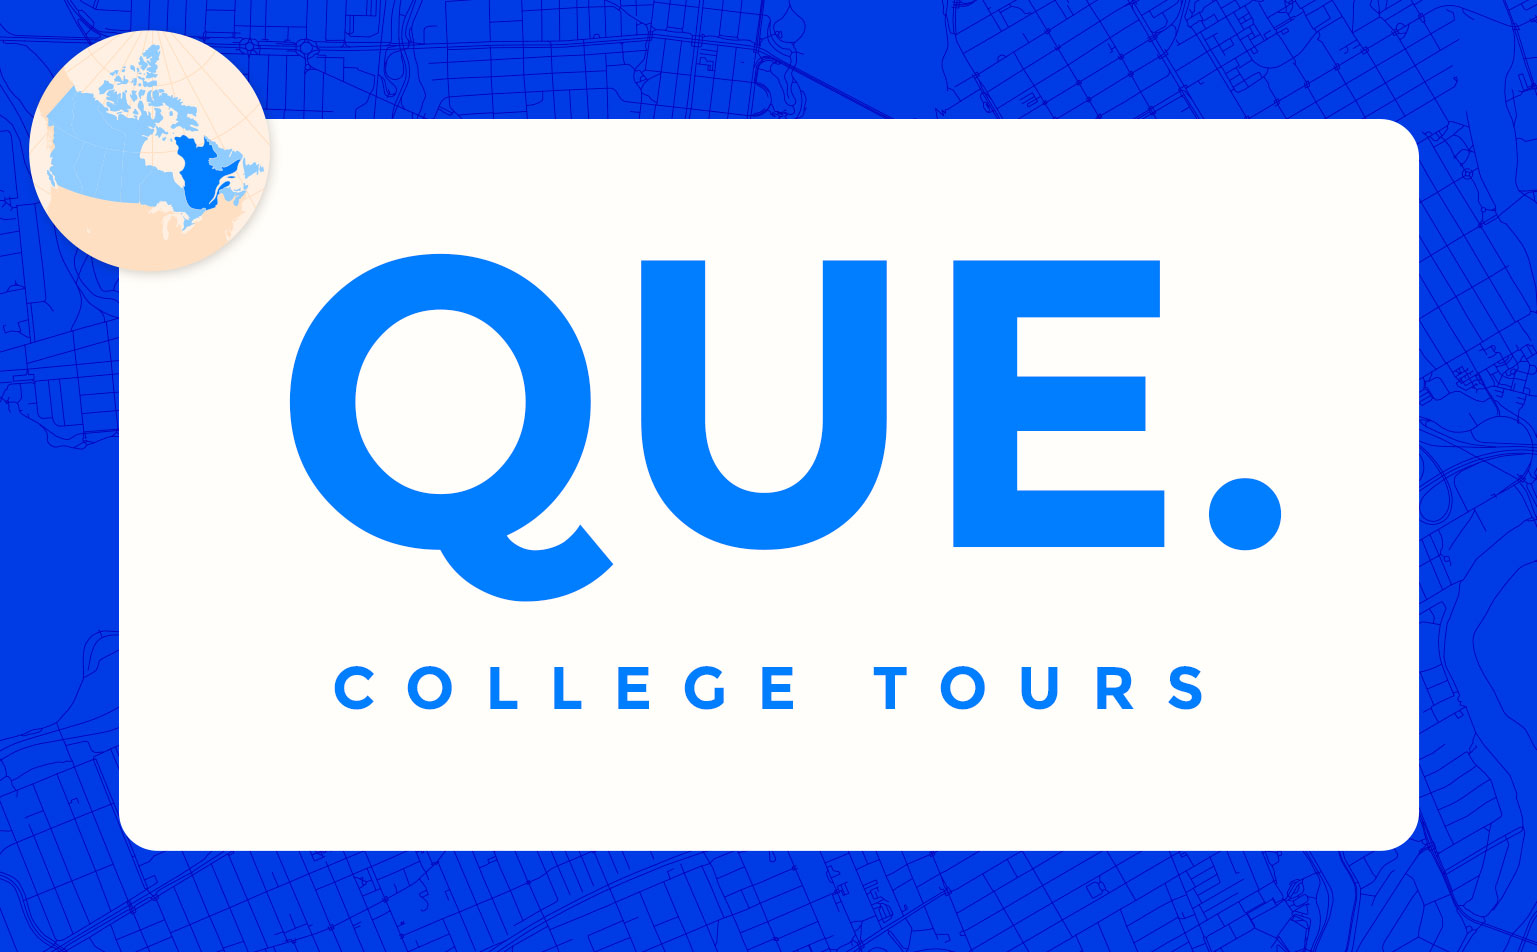 virtual campus university tours in Québec